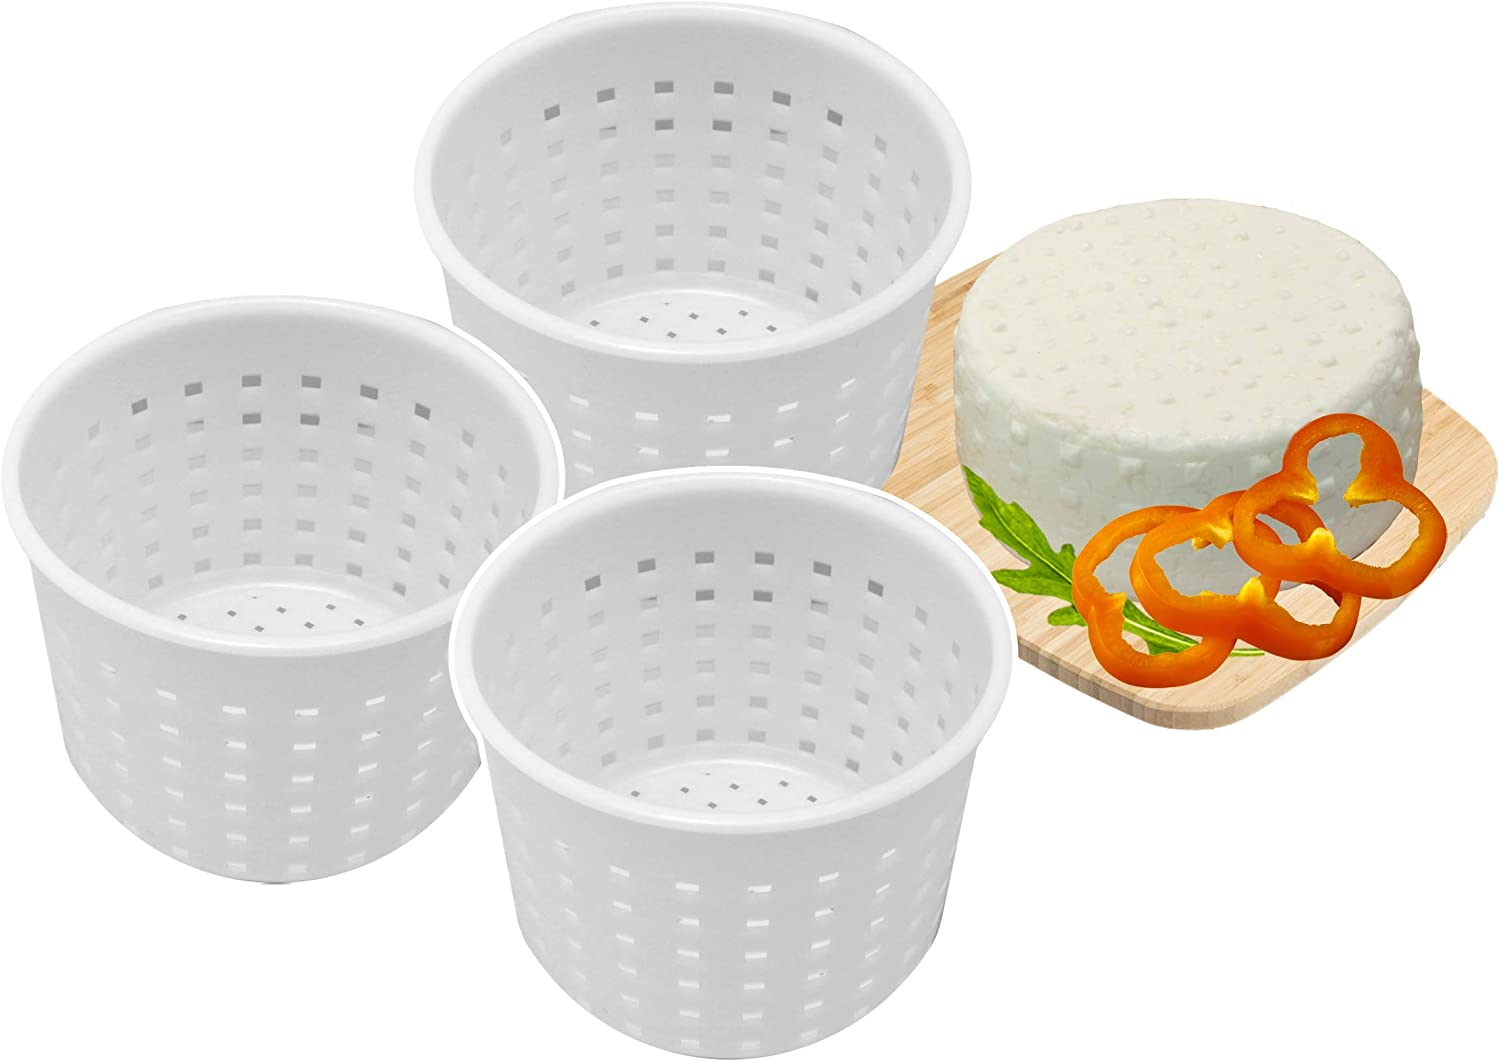 3 pcs Basic Cheese Mold Soft Sorts of Cheese 300 mililiters by PetriStor